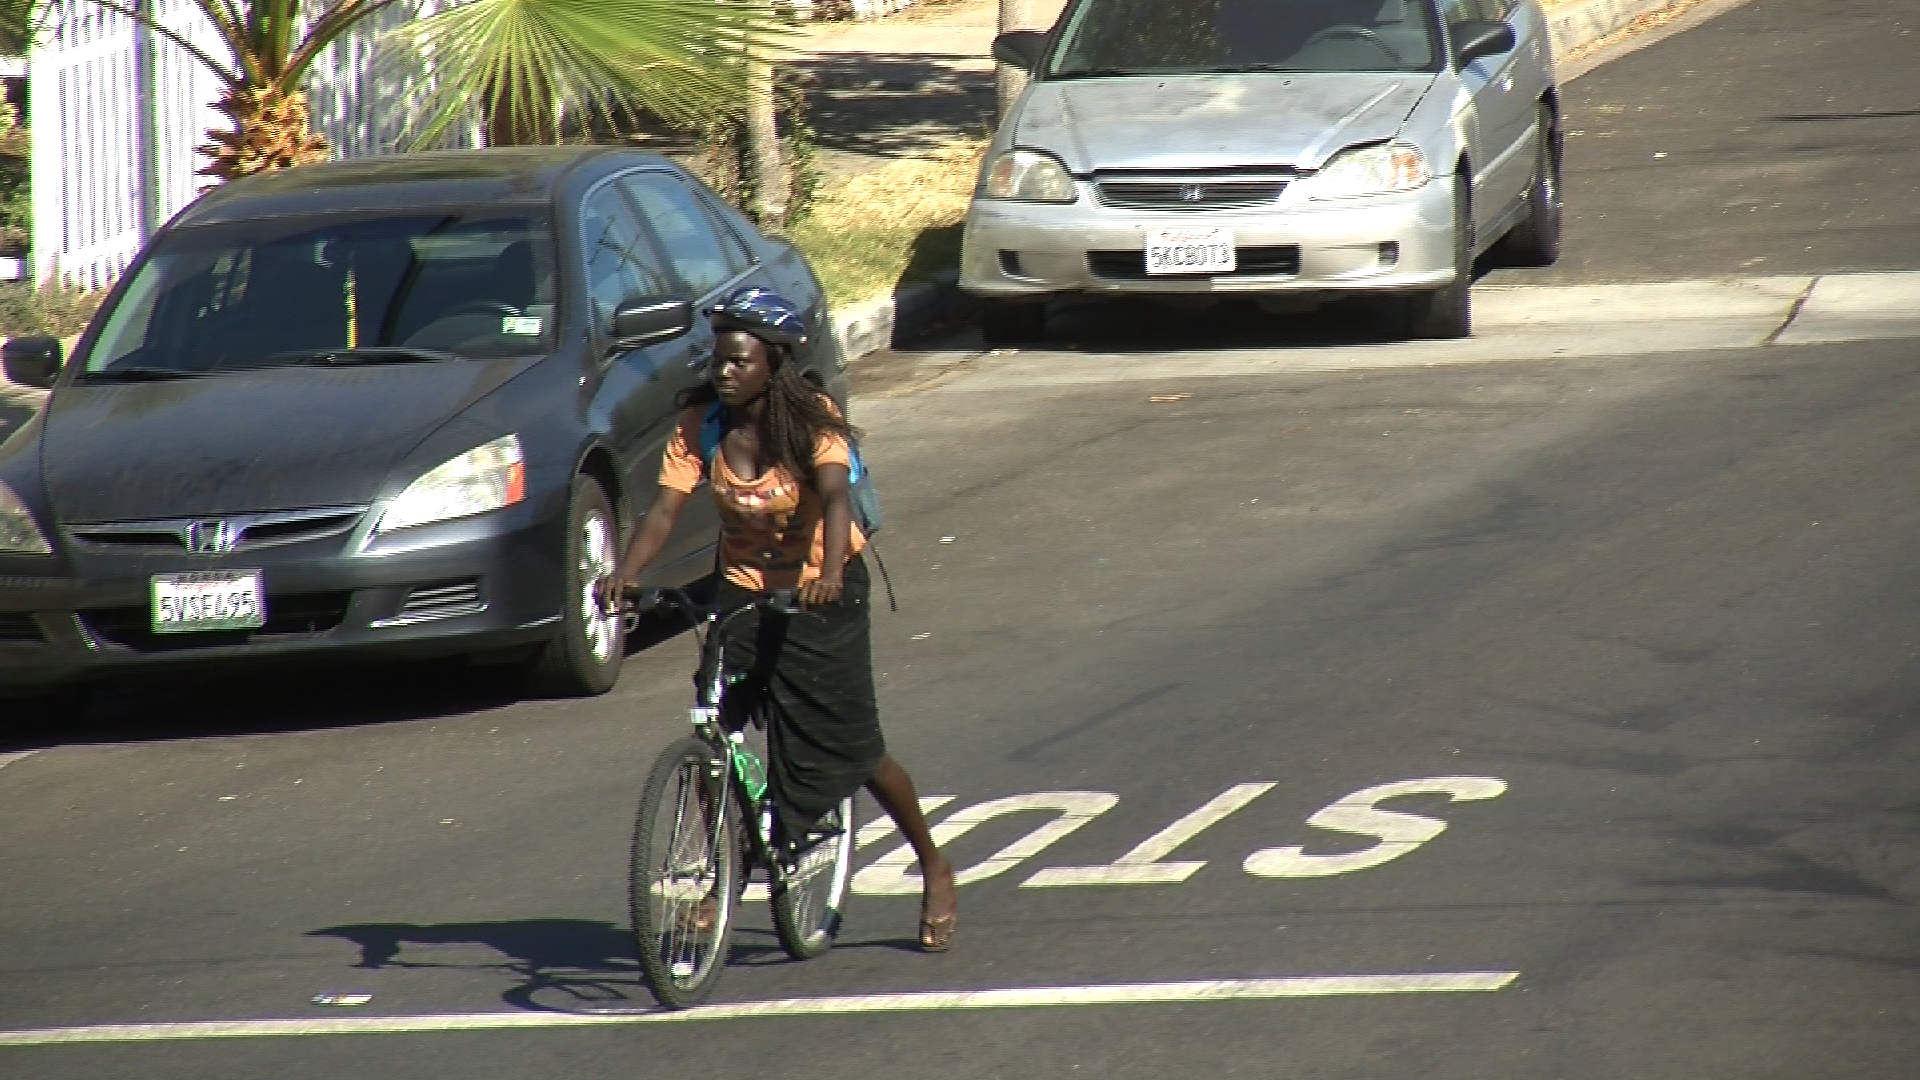 Second-Hand Bikes Give Lifeline To San Diego Refugees | KPBS